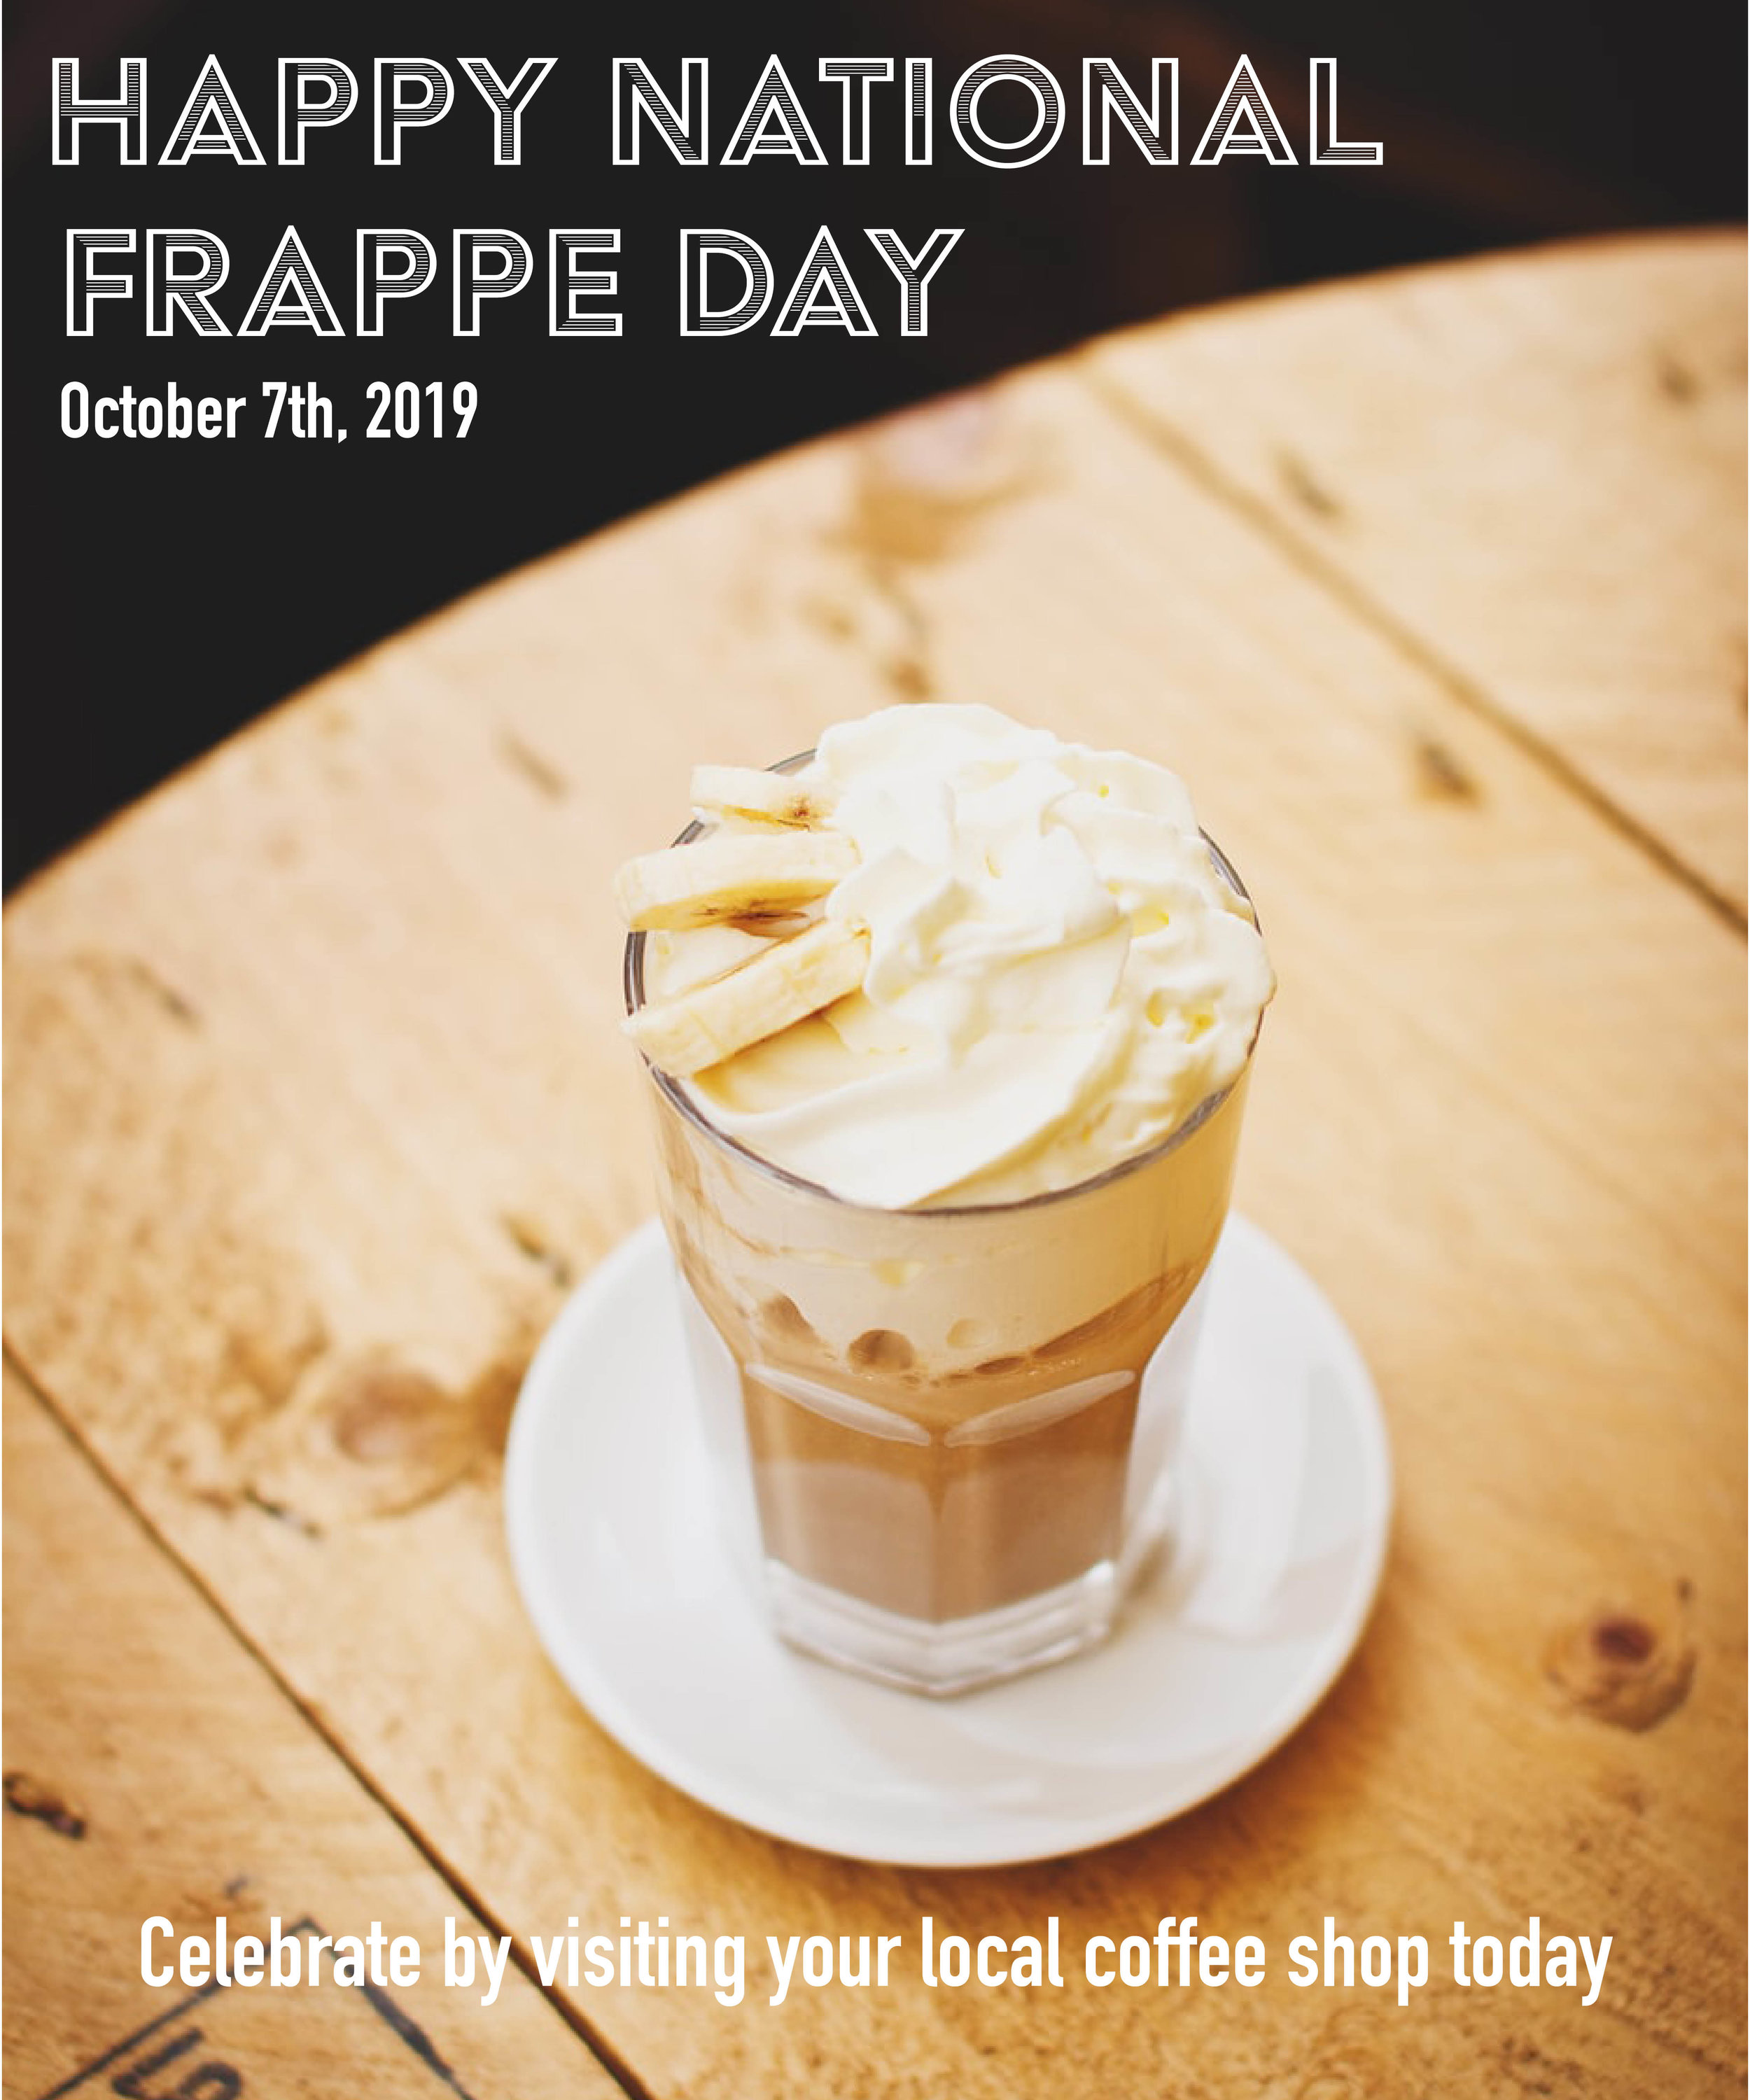 Oct. 7th, 2019, is National Frappe Day. Frappes are a cold, flavorful drink with multiple different combinations. It is usually blended with coffee or fruits. Let's celebrate #NationalFrappeDay and visit a coffee shop today.